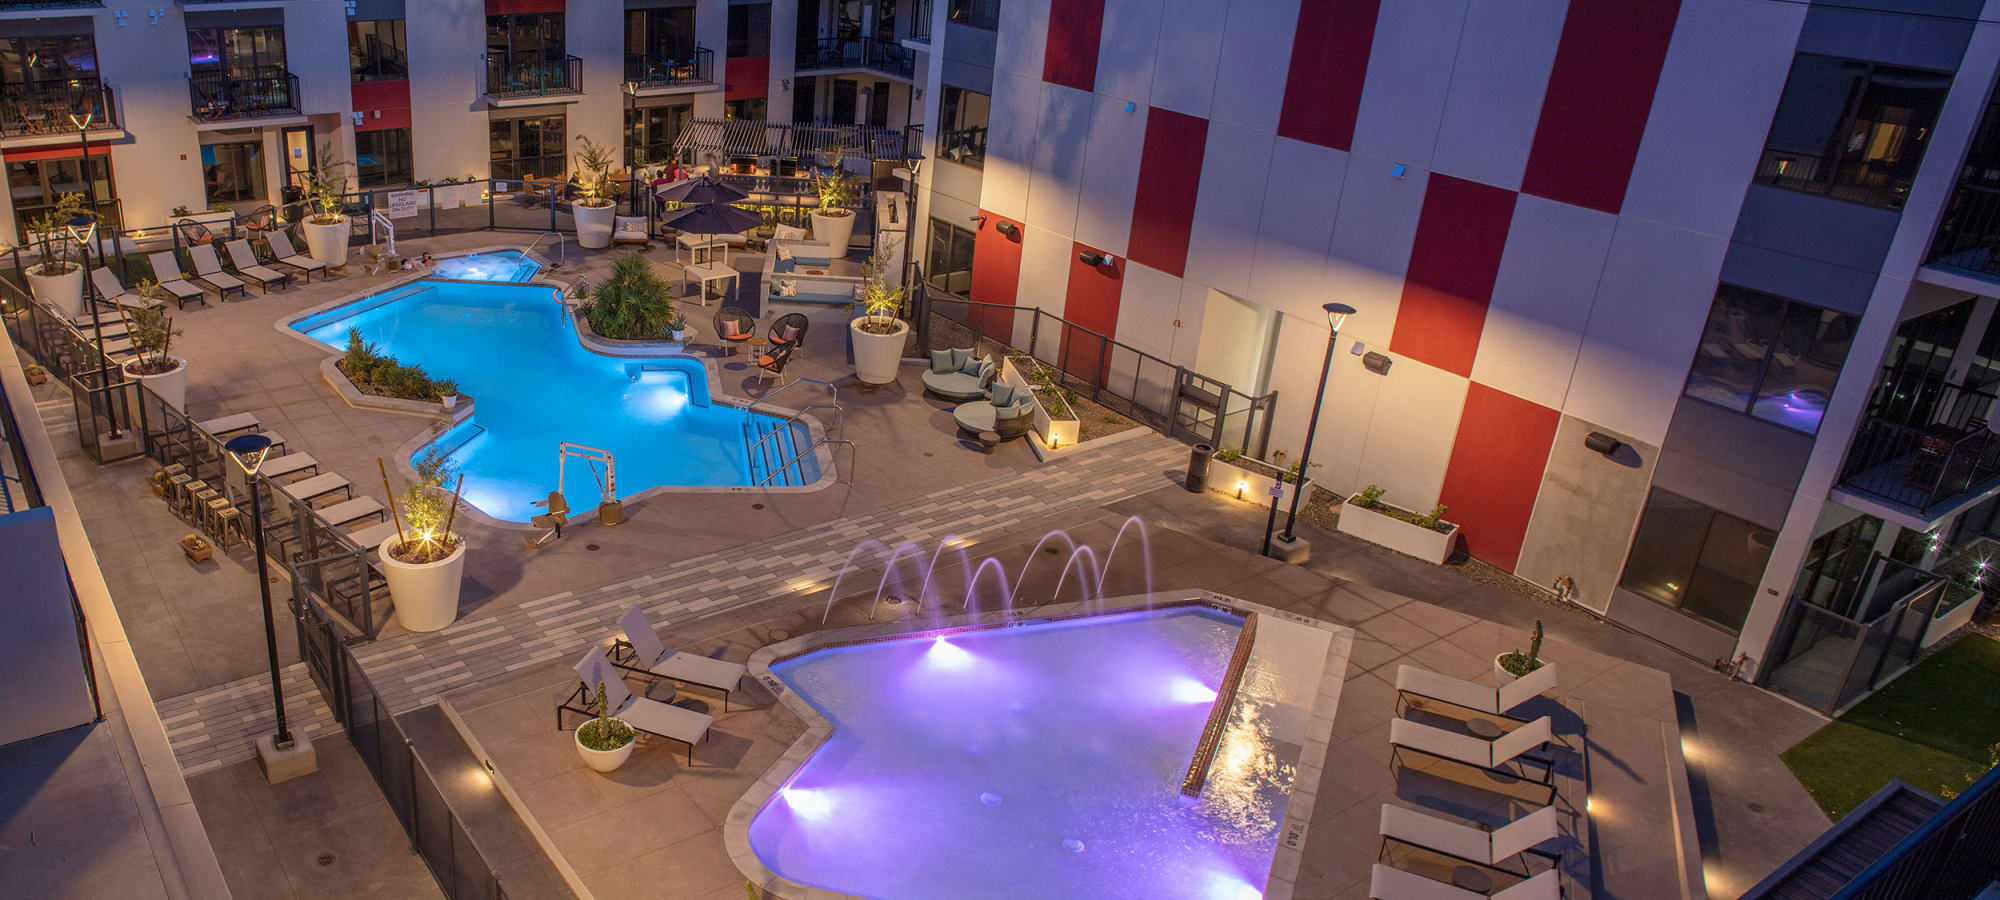 Pool at nighttime at The Local Apartments in Tempe, Arizona